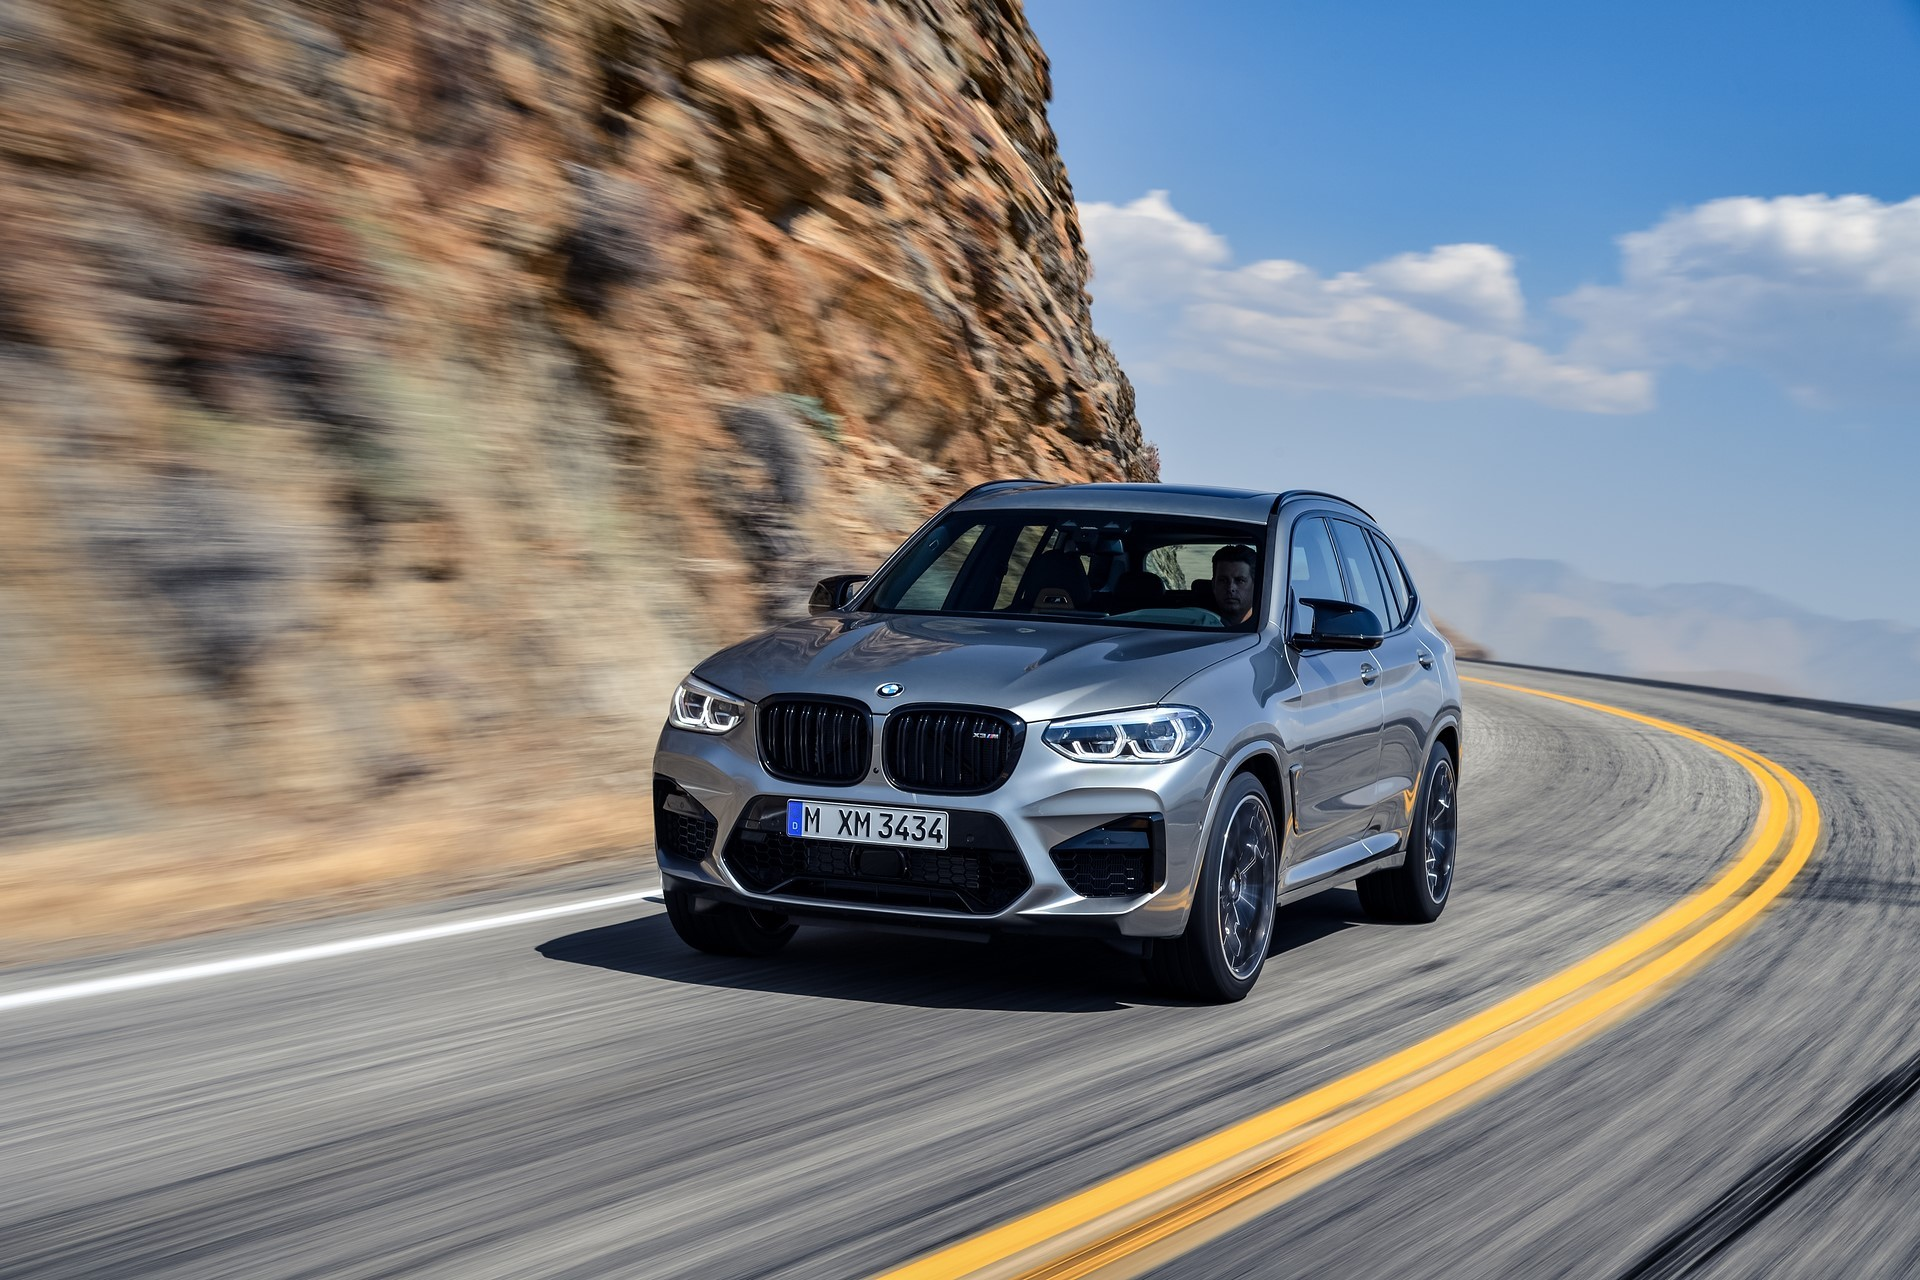 BMW X3 M and X4 M 2019 (24)